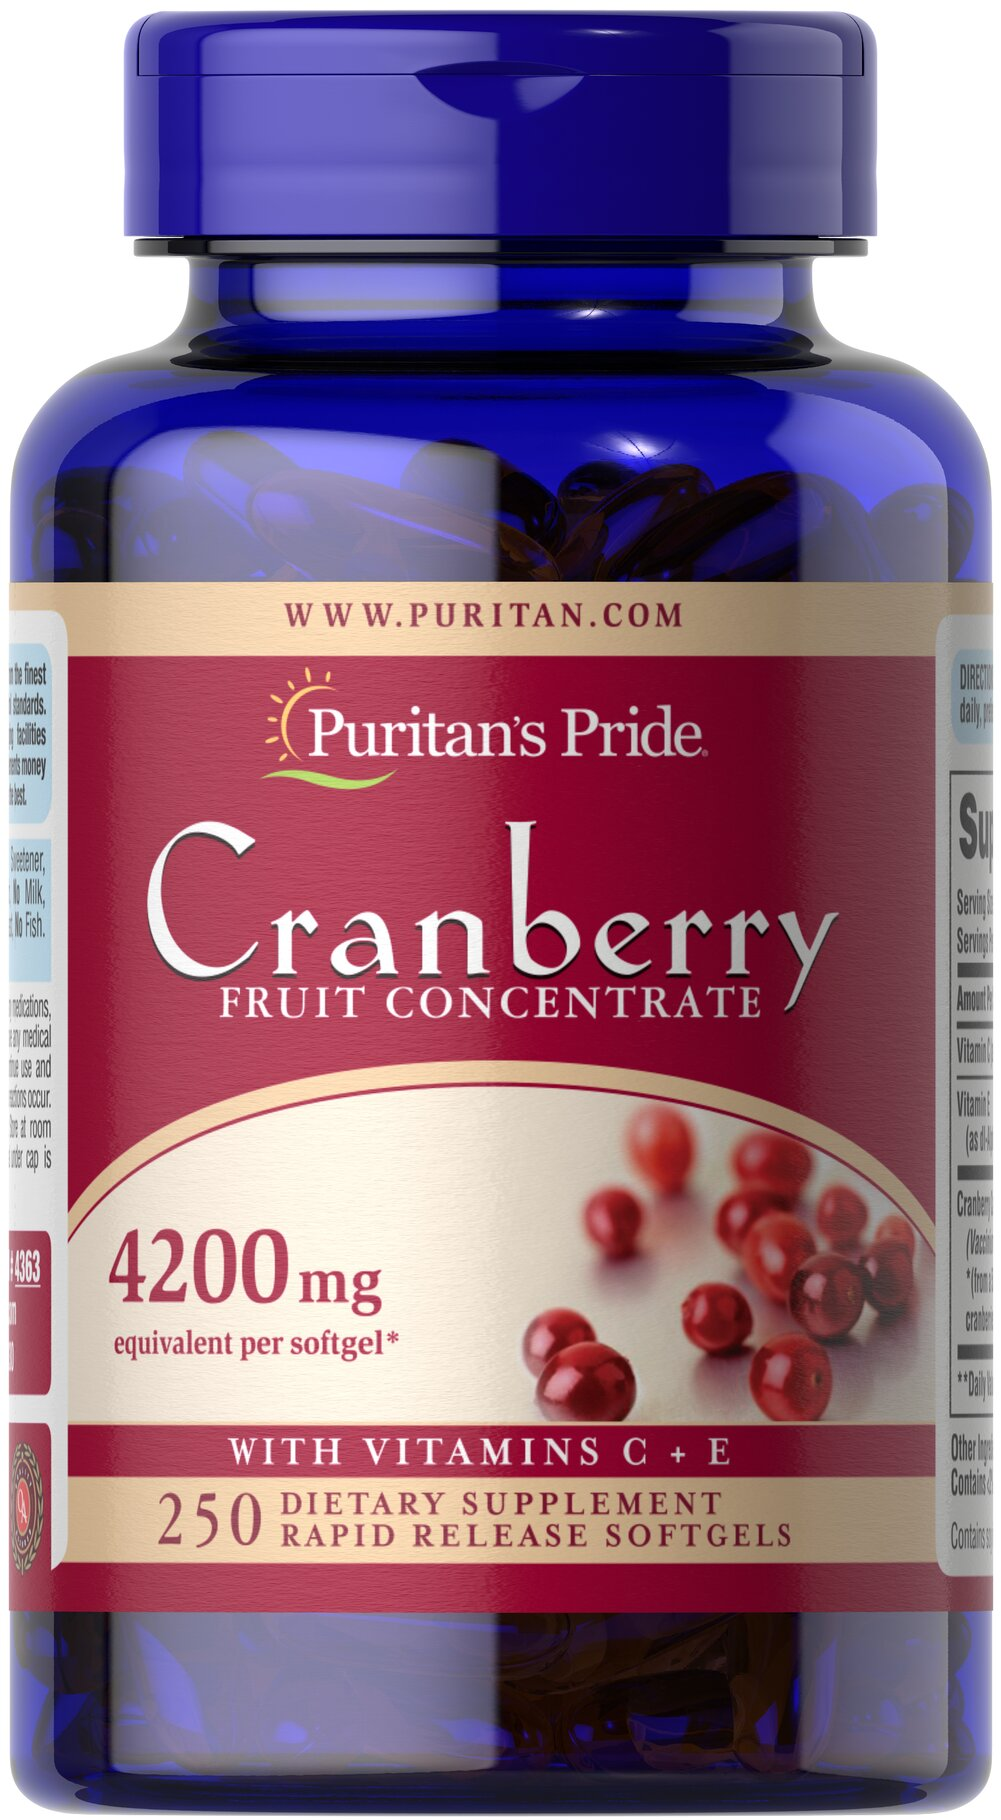 Cranberry Fruit Concentrate with C & E 4200 mg <p>This product has the benefits of concentrated cranberry without the unnecessary sugar and calories. Each of our concentrated (4200 mg) Cranberry softgels provide the equivalent of (8400 mg) of fresh cranberries plus (40 mg) of Vitamin C and 6 IU of Vitamin E.  Adults can take two softgels 3 times daily, after meals.</p> 250 Softgels 4200 mg $34.99